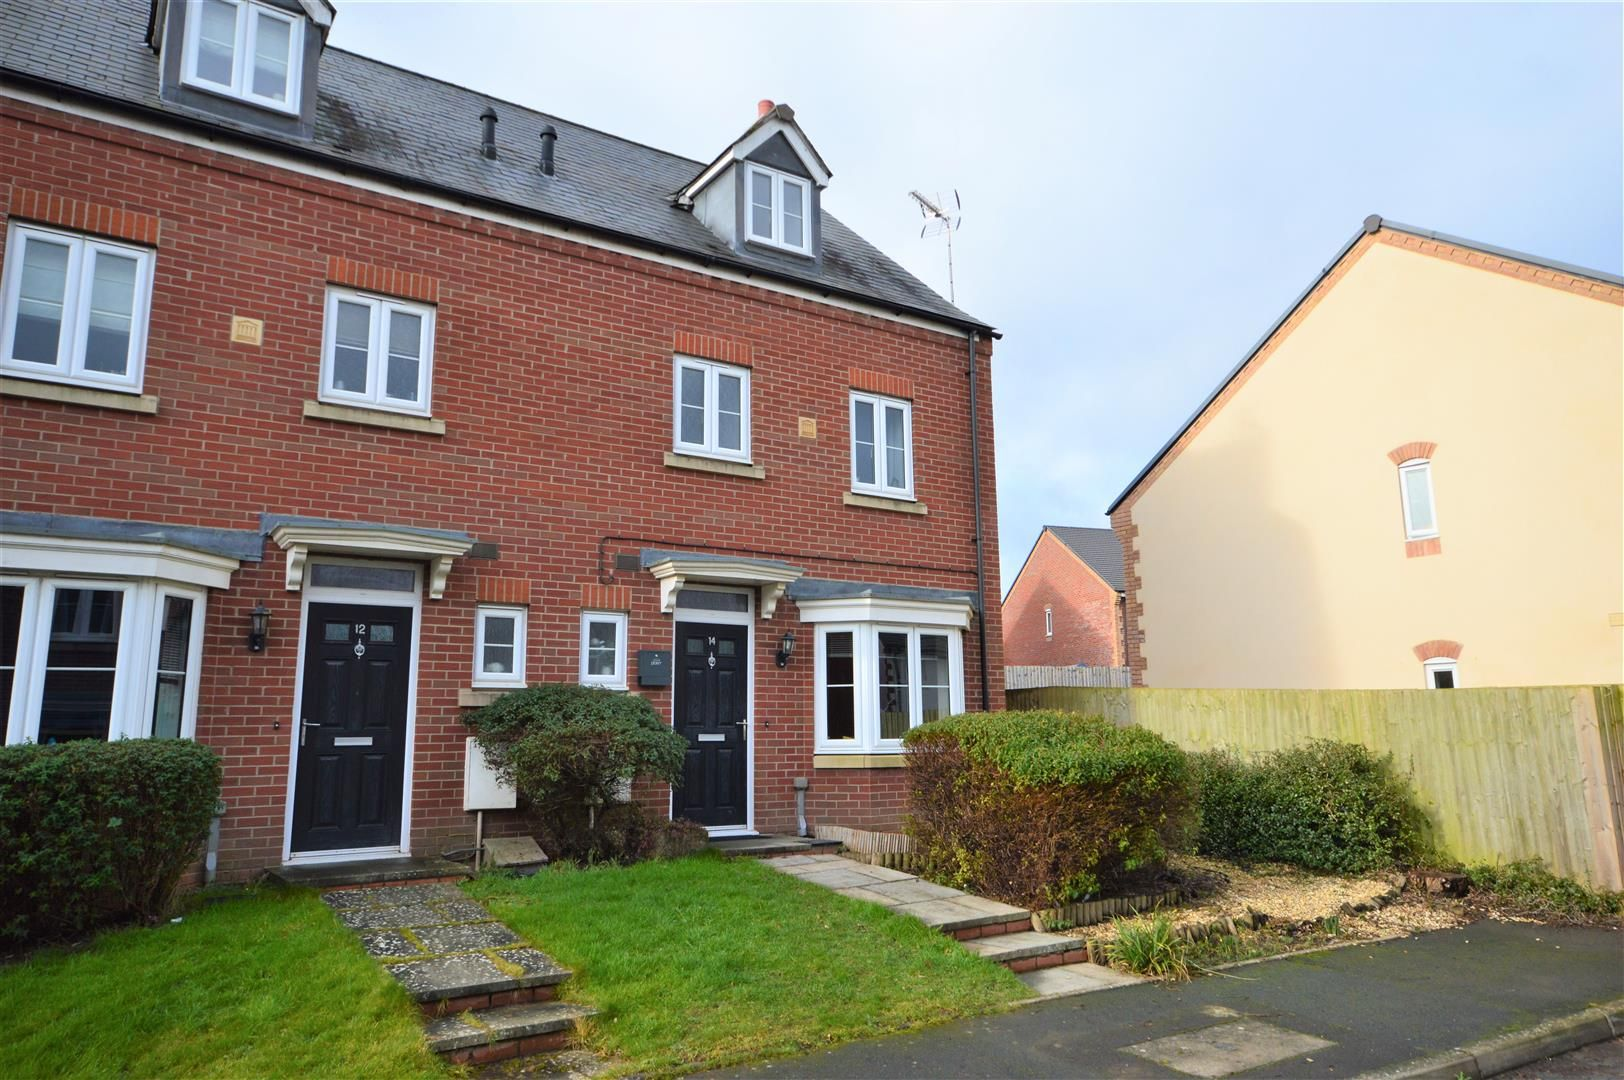 4 bed semi-detached for sale in Leominster, HR6